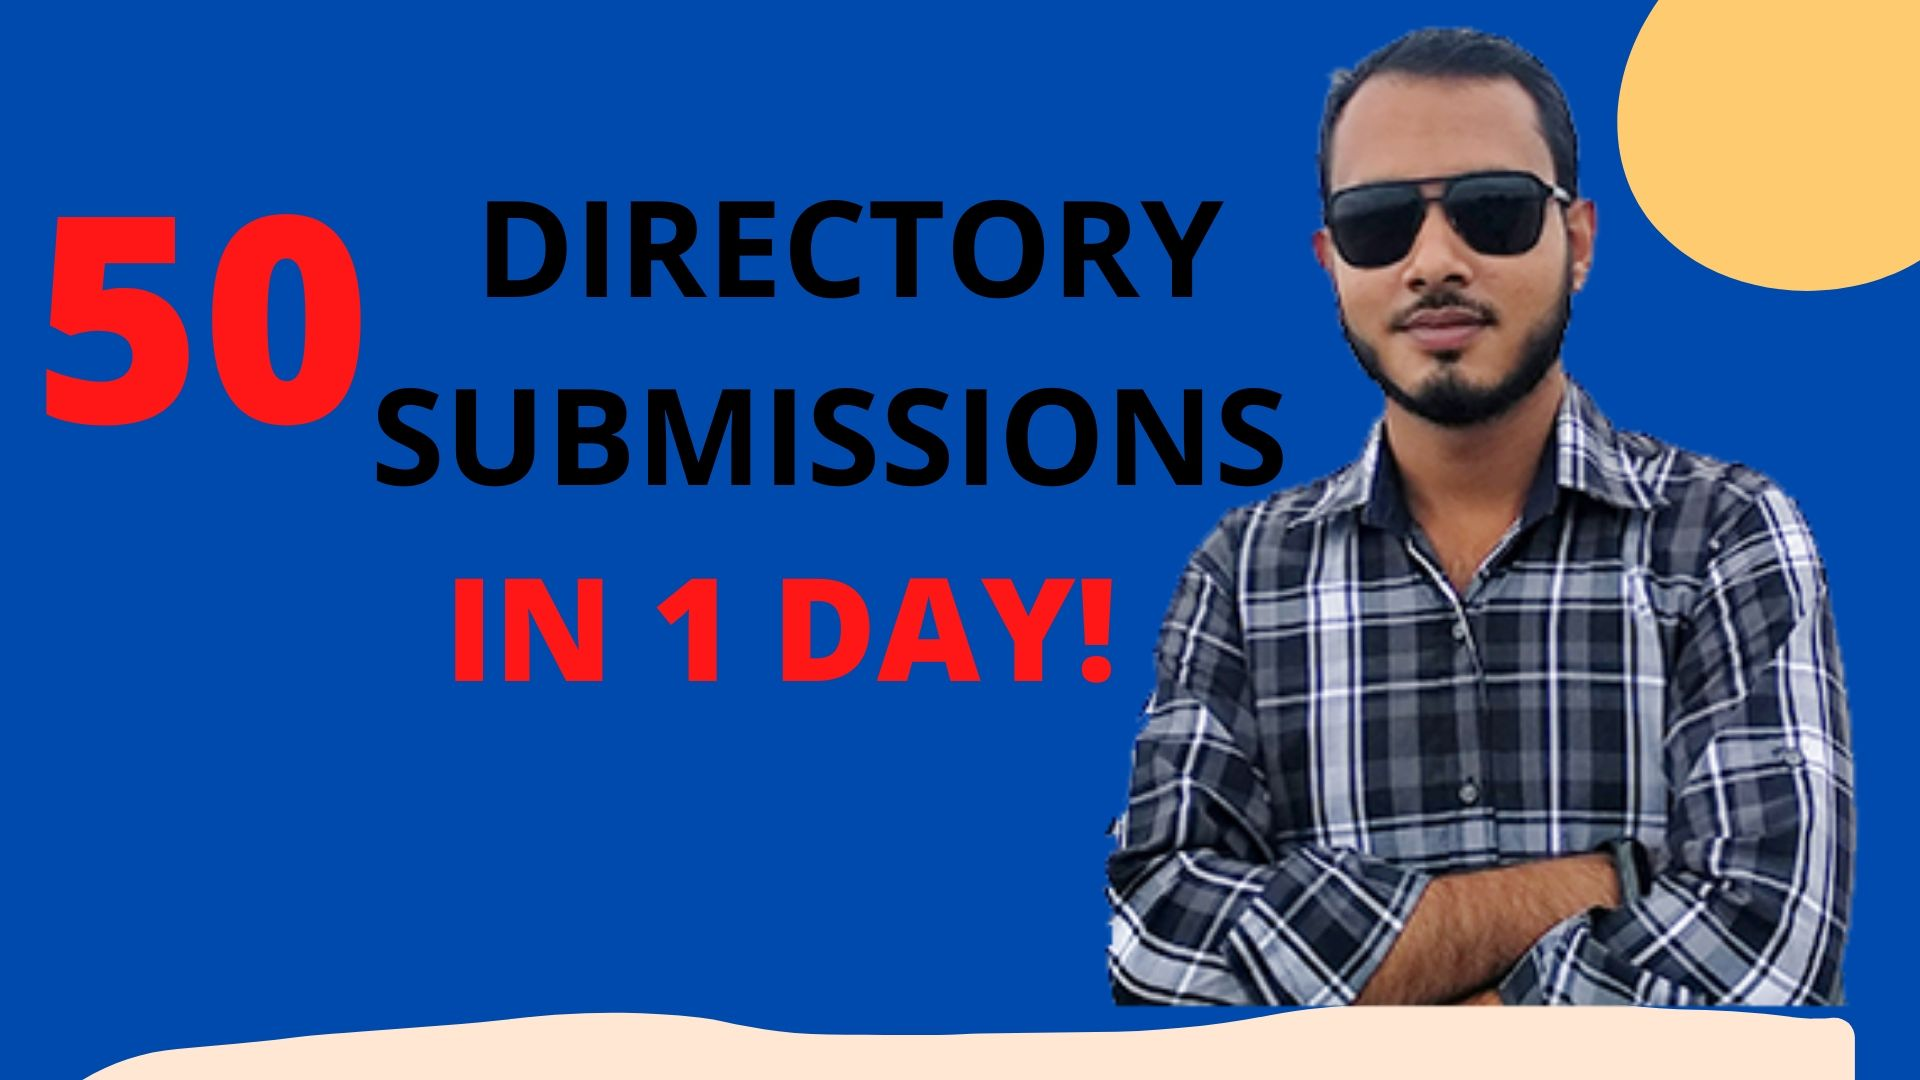 I will create you 50 directory submission